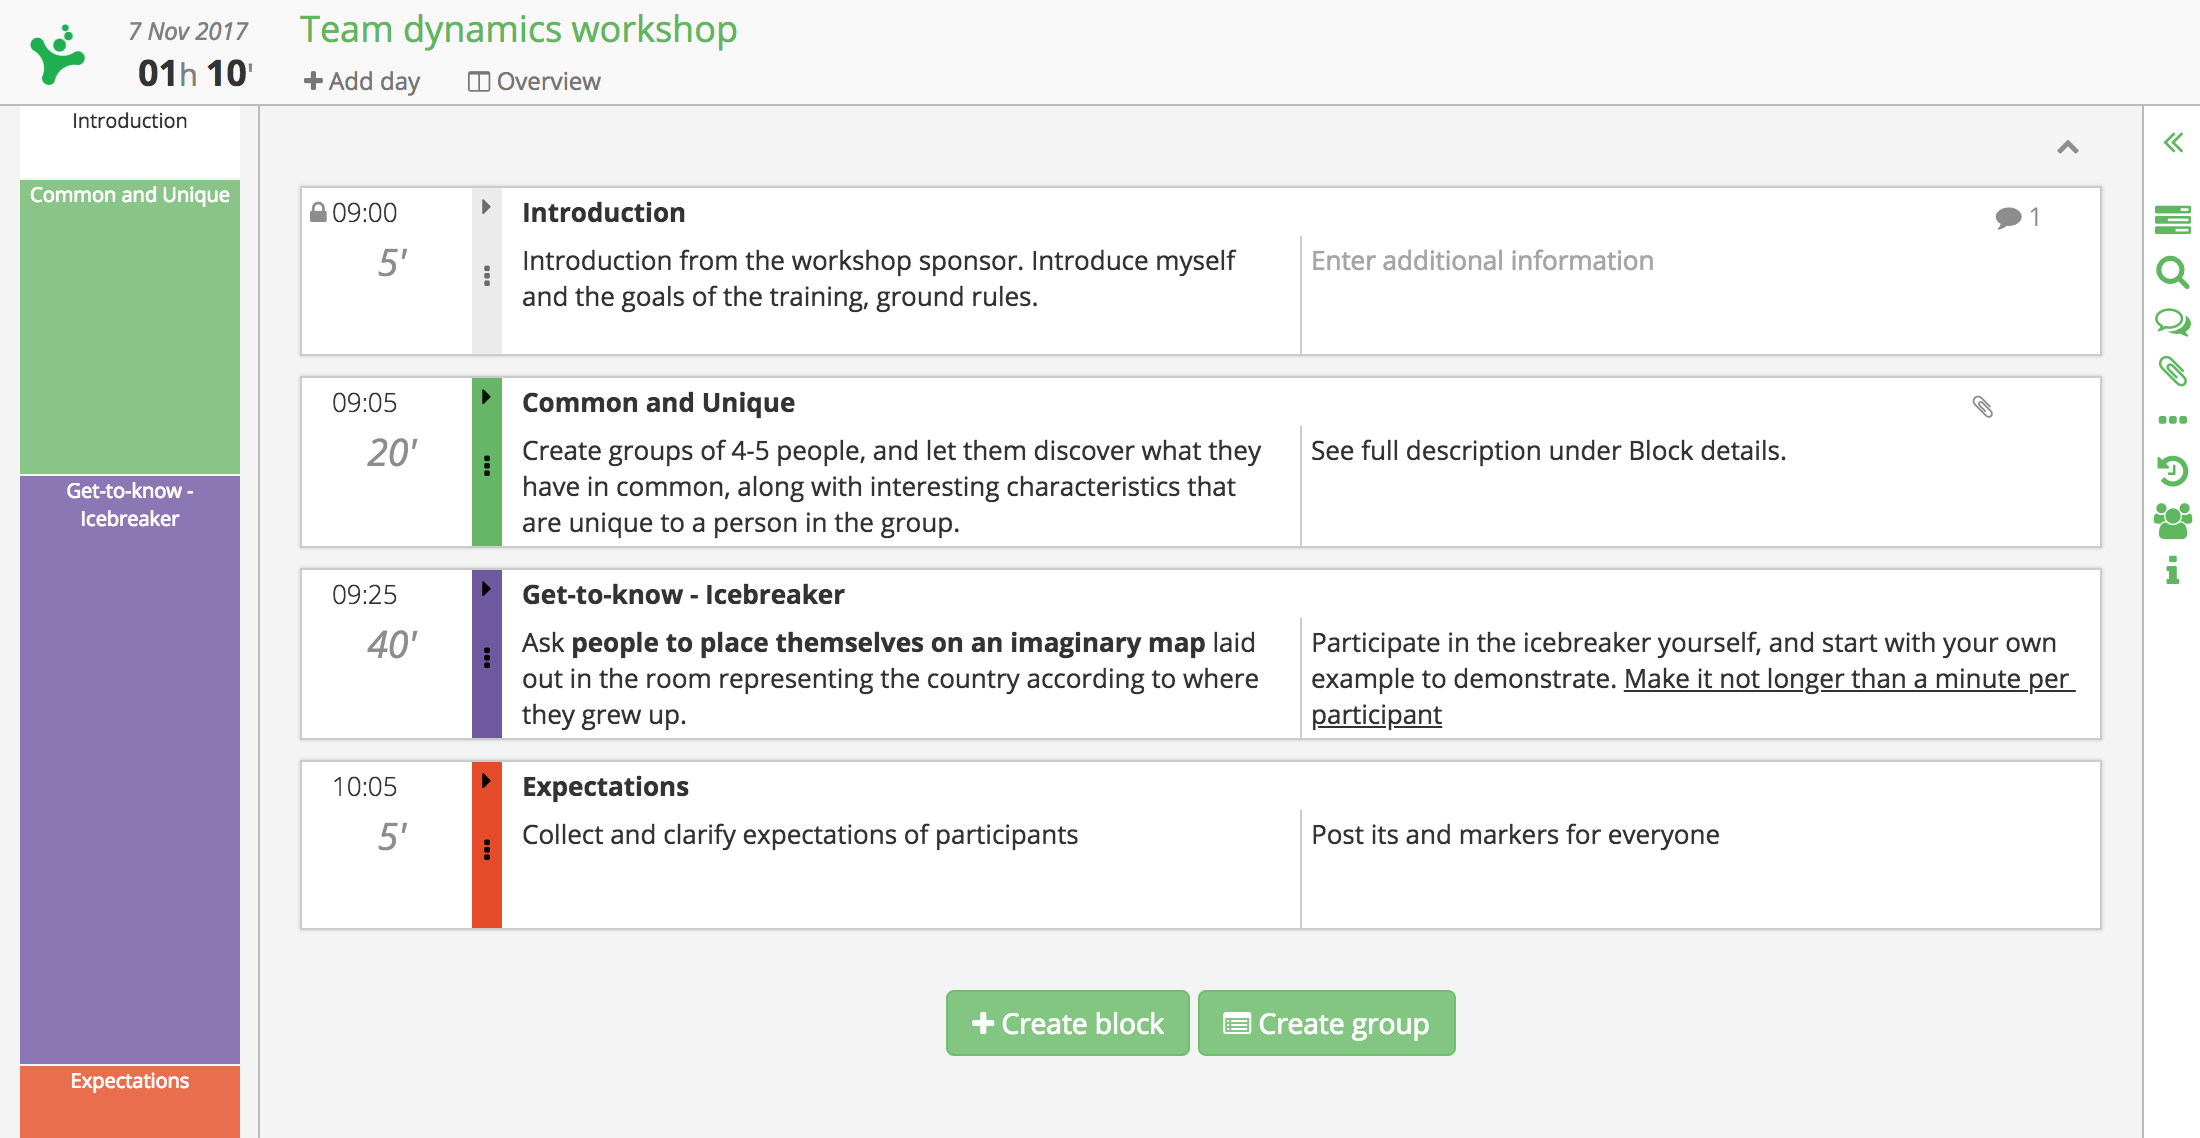 SessionLab planner - workshop planning made simple